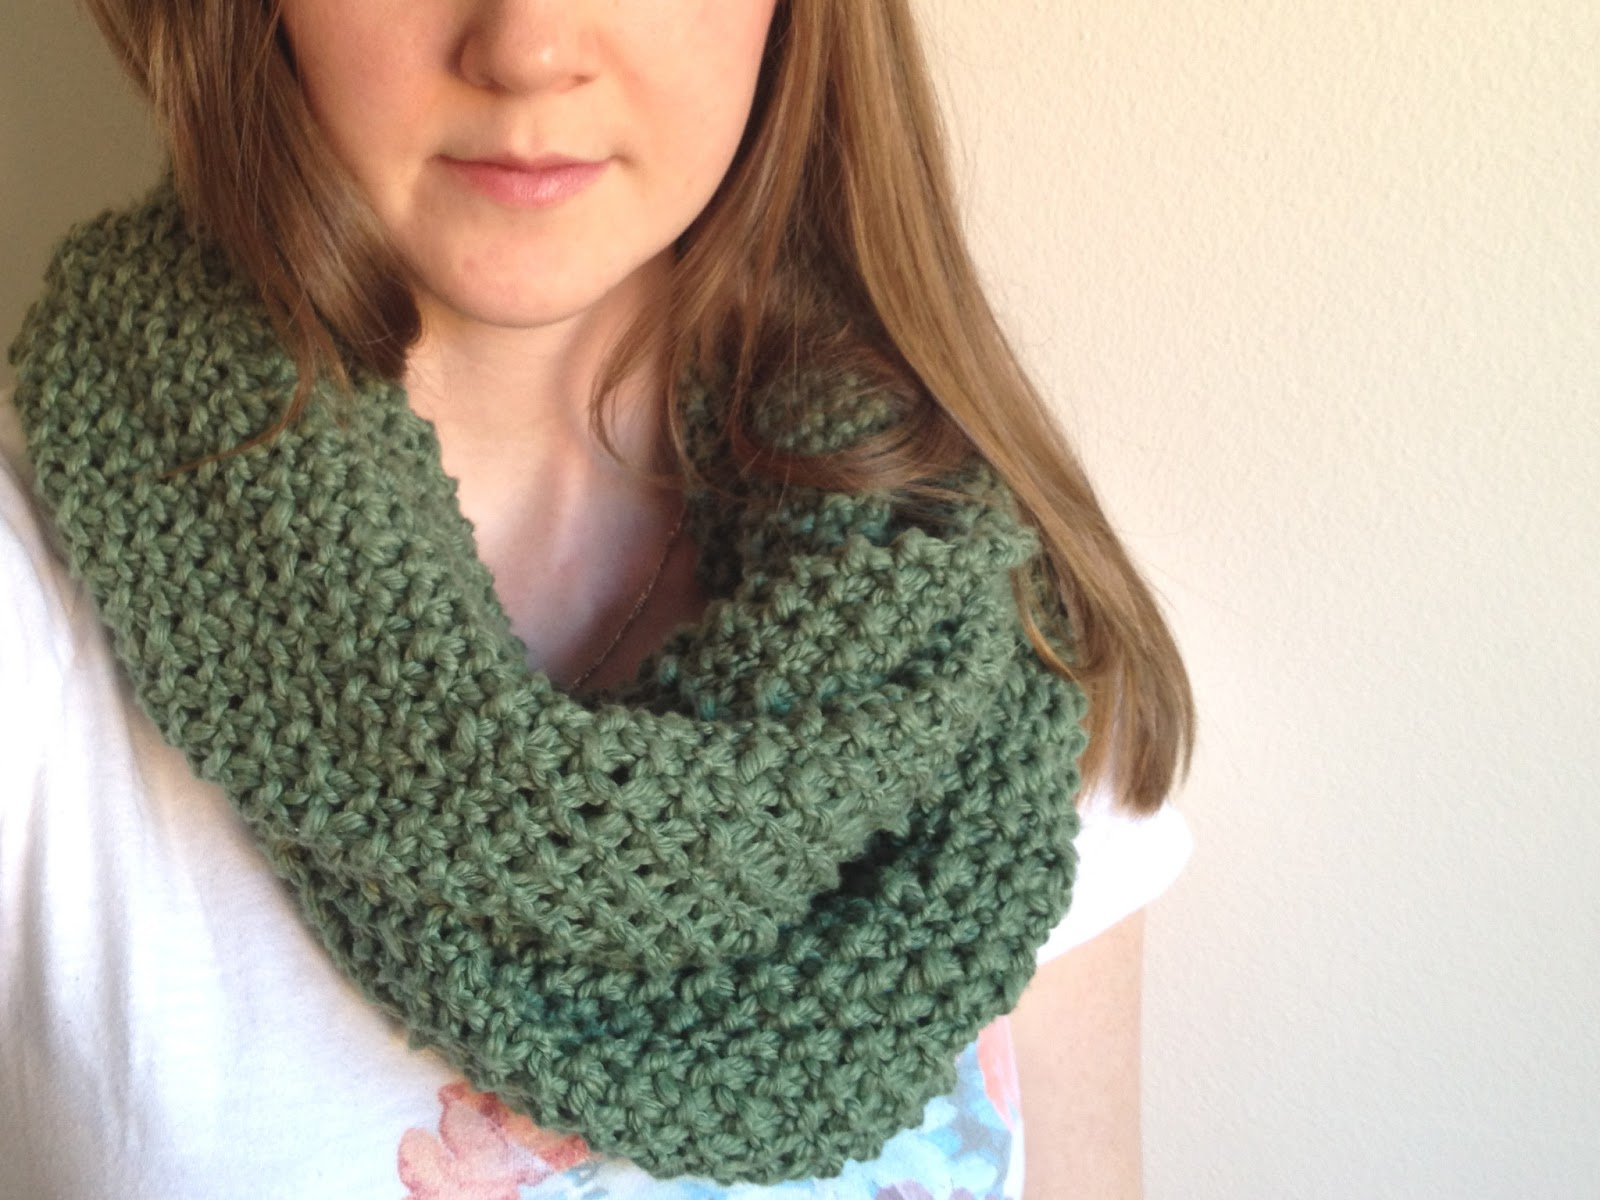 tinselmint FREE INFINITY SCARF PATTERN FOR BEGINNERS How To Knit An Infinity Scarf Pattern